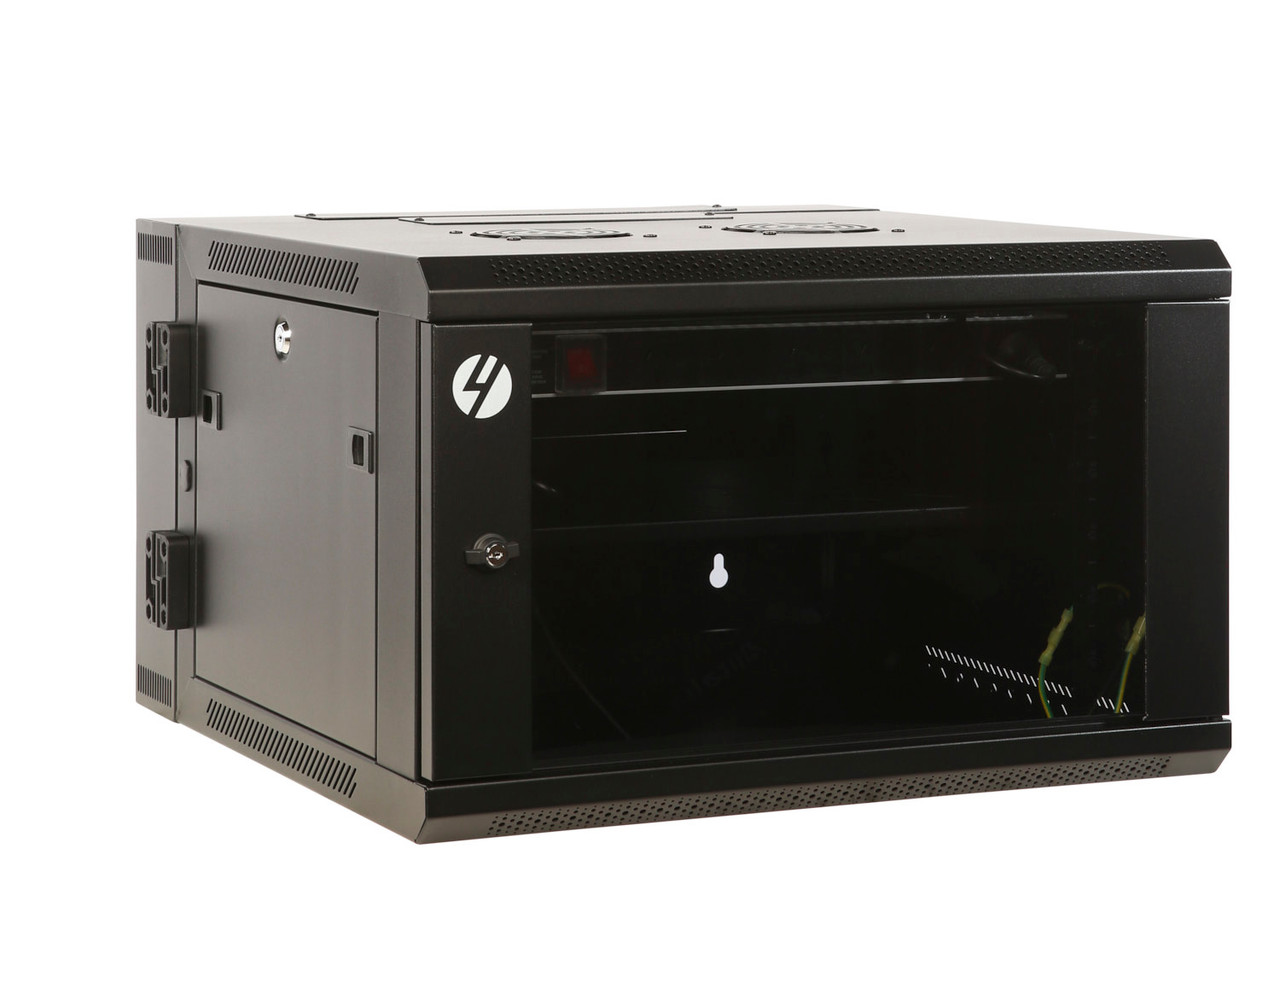 Image for 4Cabling 6RU W600mm x D600mm Hinged Wall Mount Server Rack CX Computer Superstore